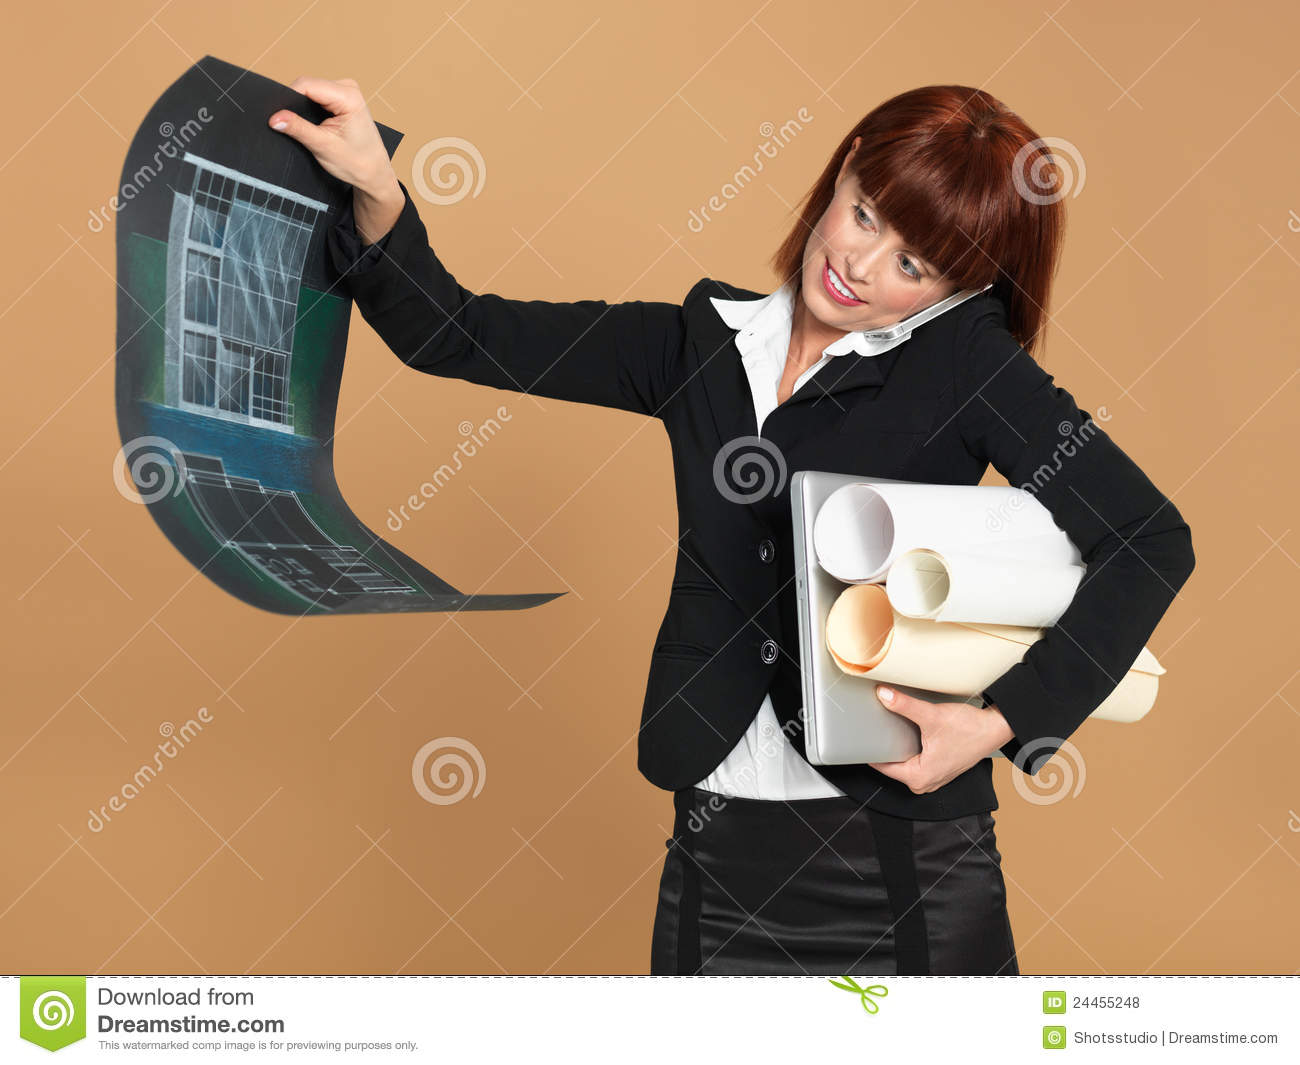 Architect holding laptop, papers,